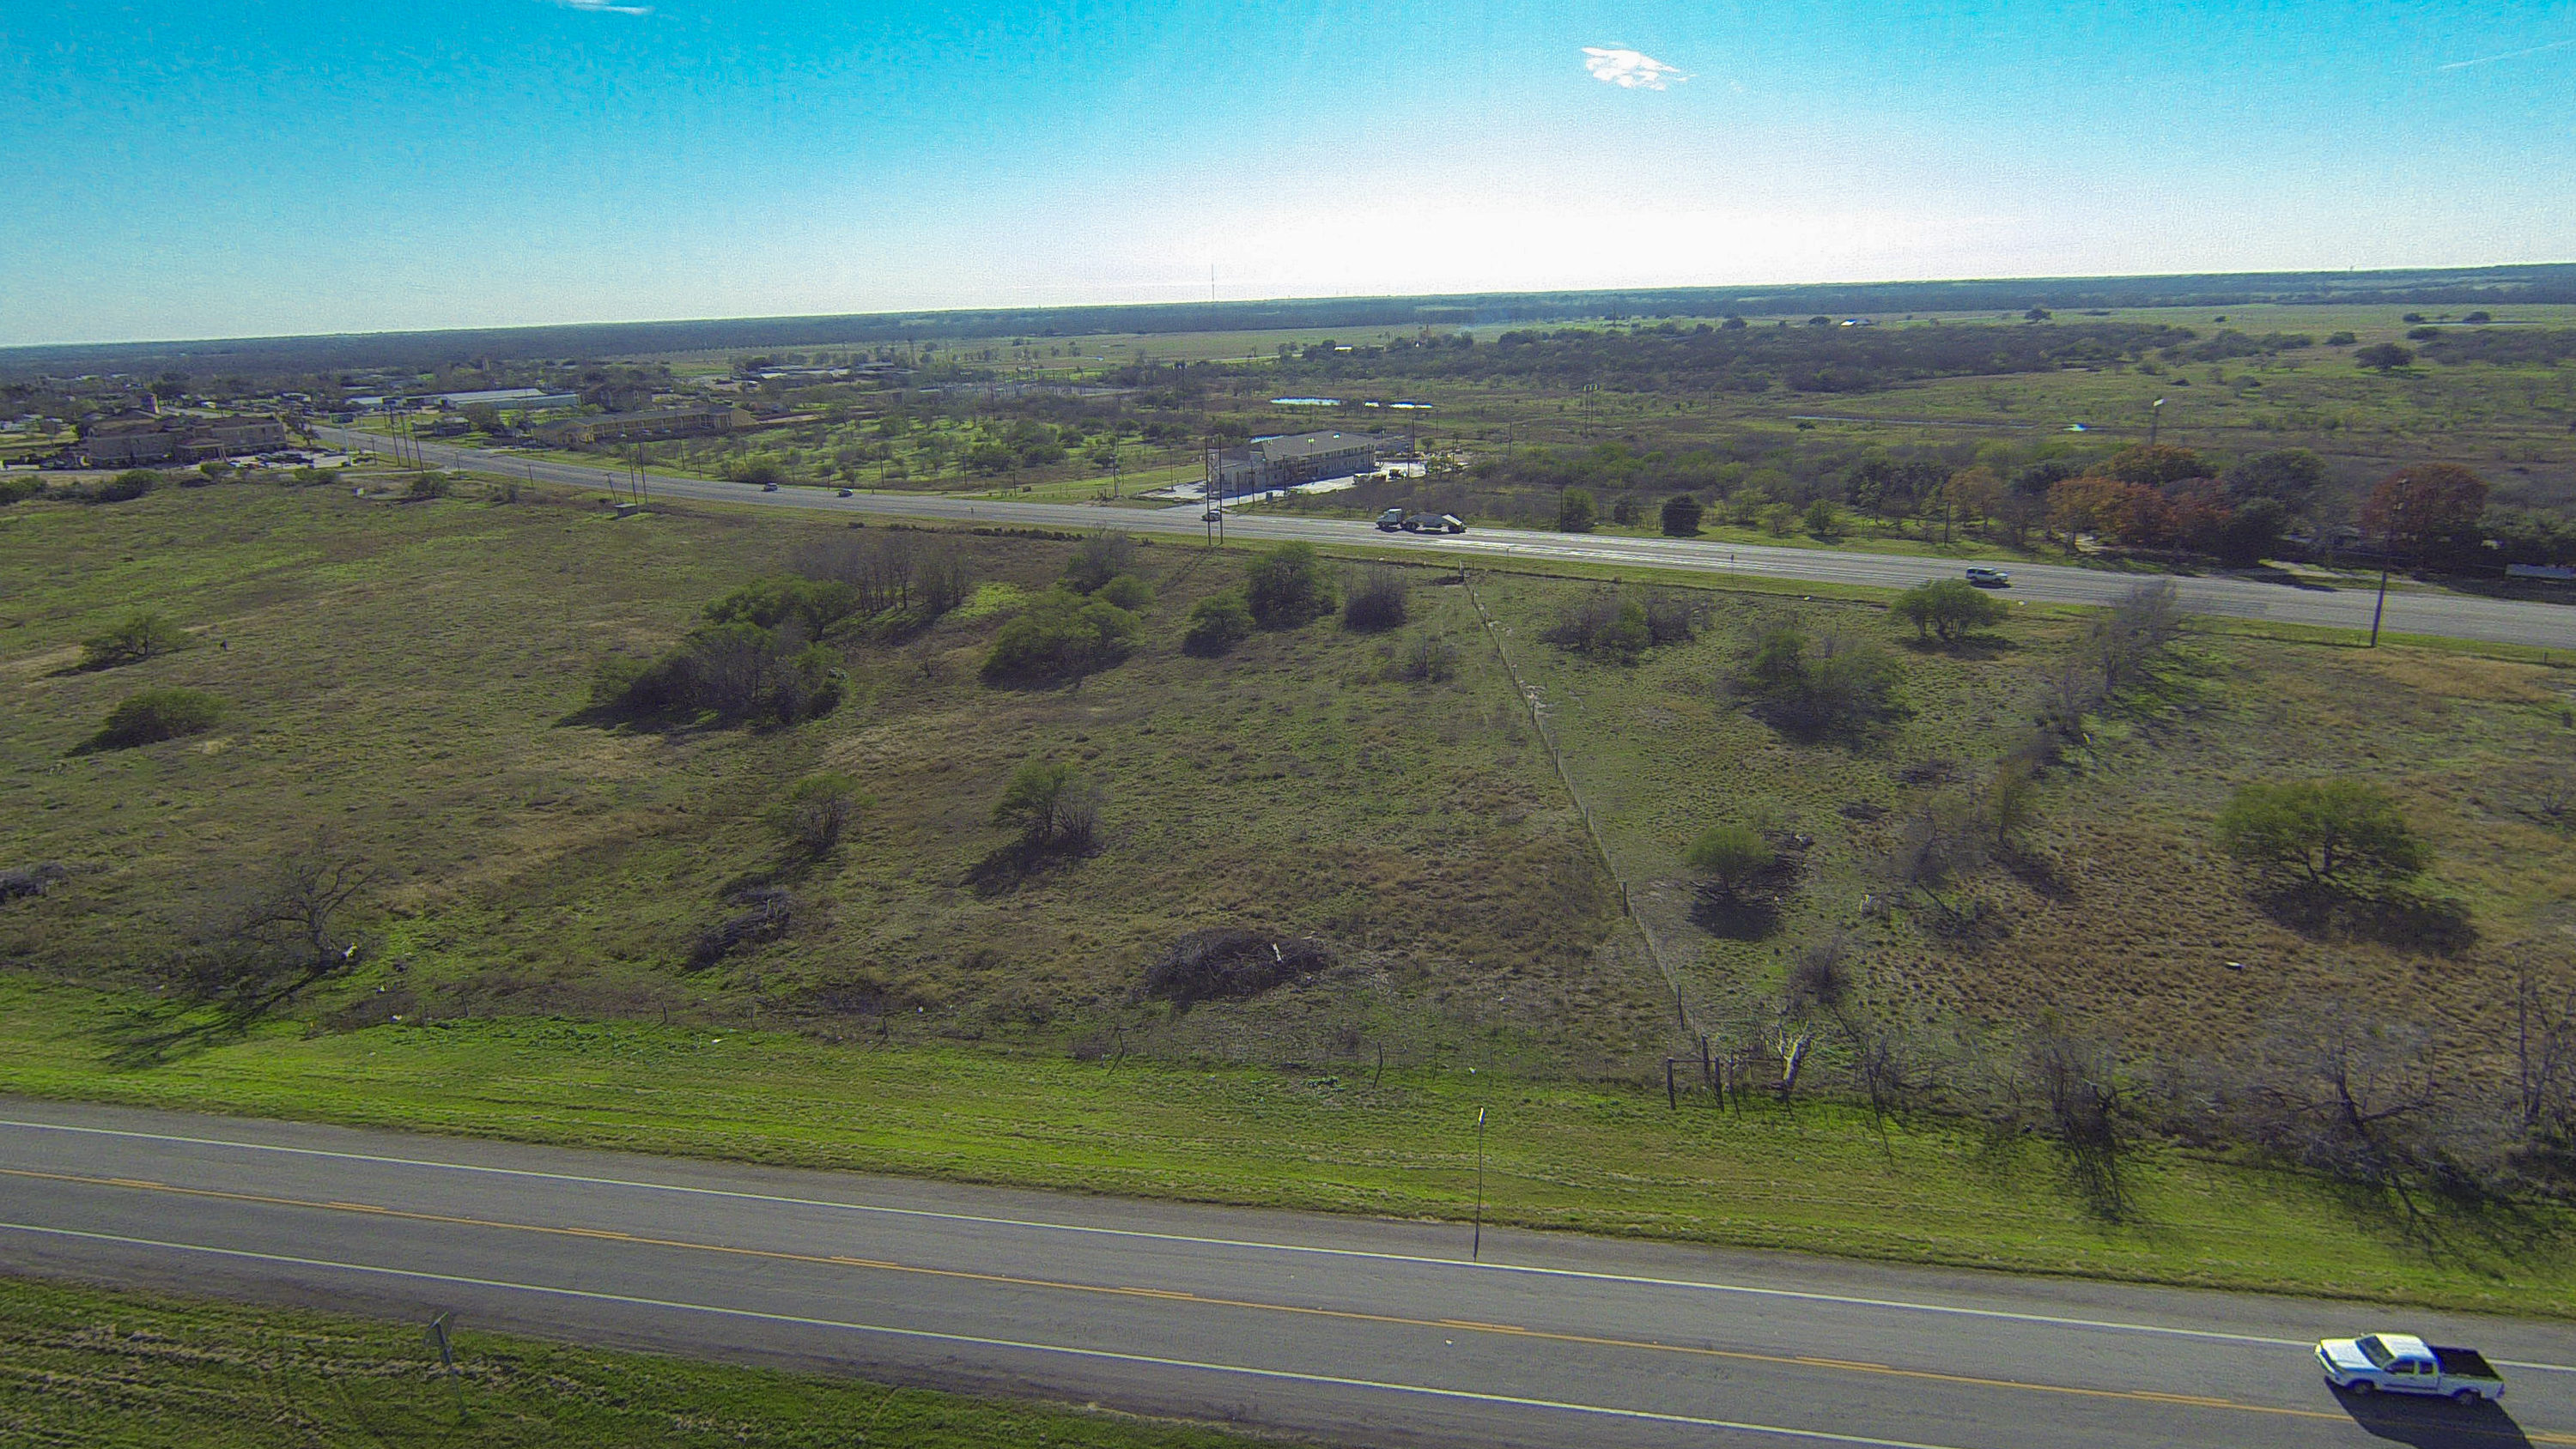 Additional photo for property listing at HWY 183 N Water St., Gonzales  Gonzales, Texas 78629 United States